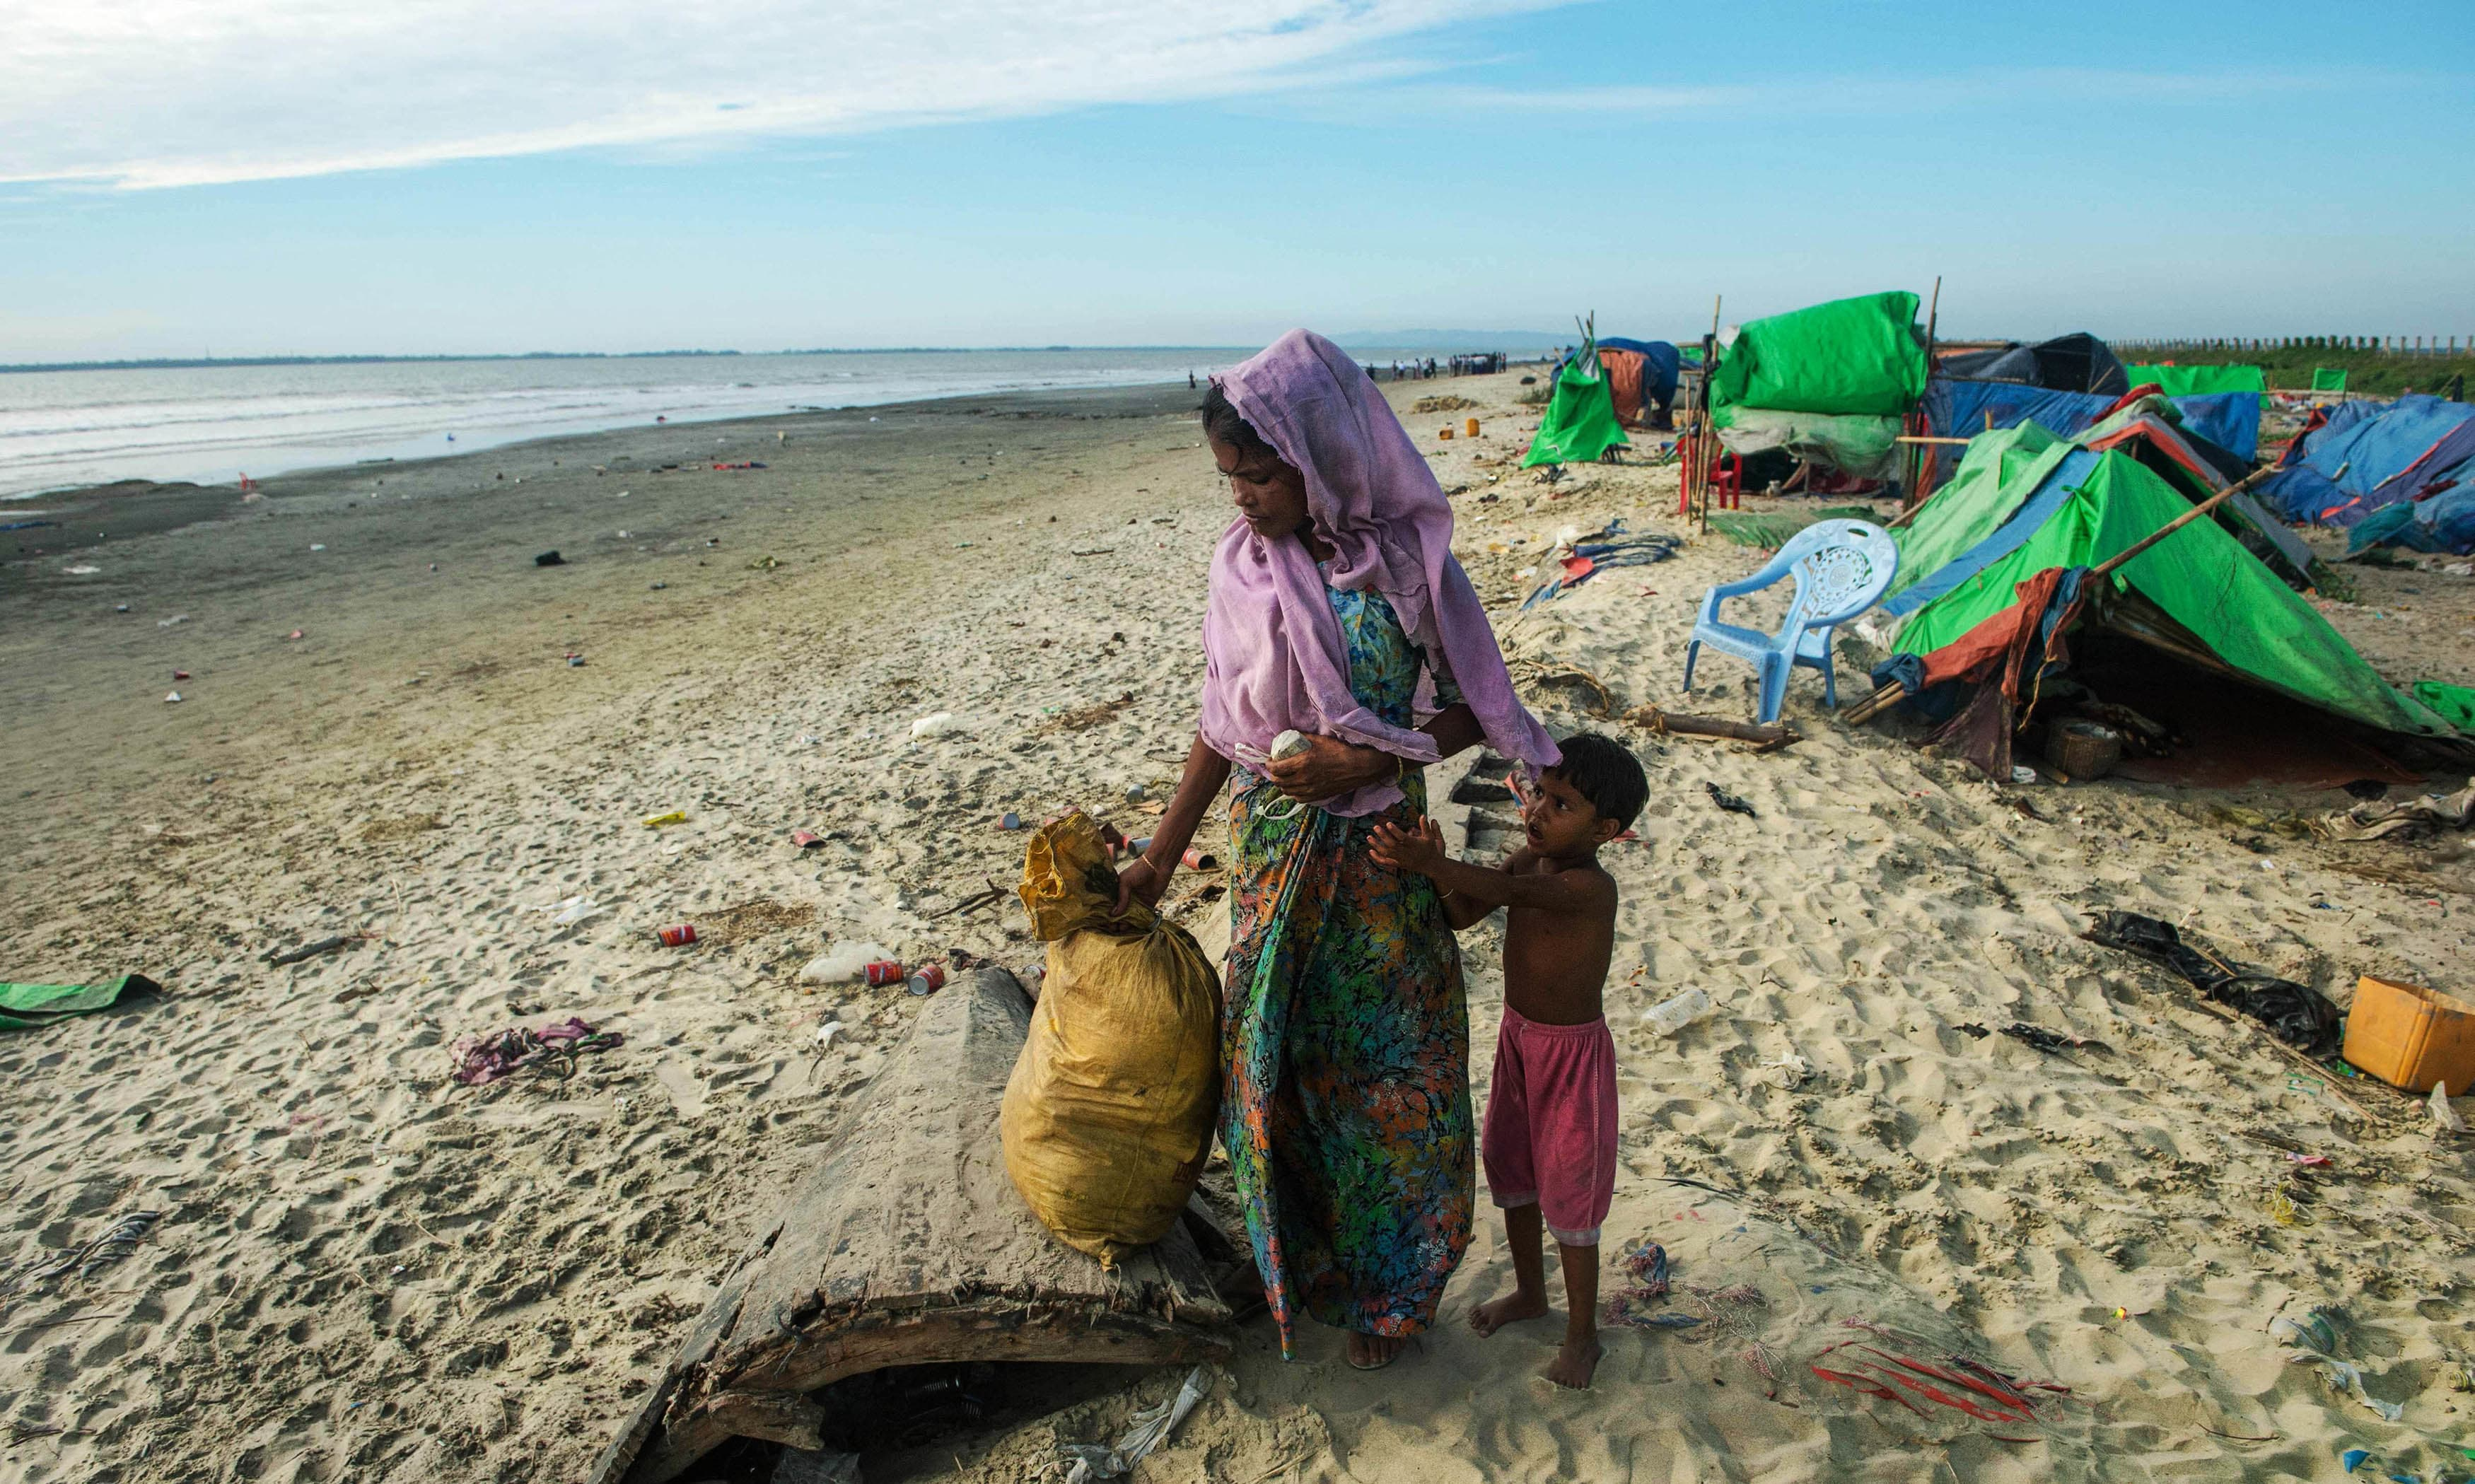 a woman who was carrying a bag on her head takes a break while holding onto a child near tents at a makeshift camp in Rakhine. —AFP